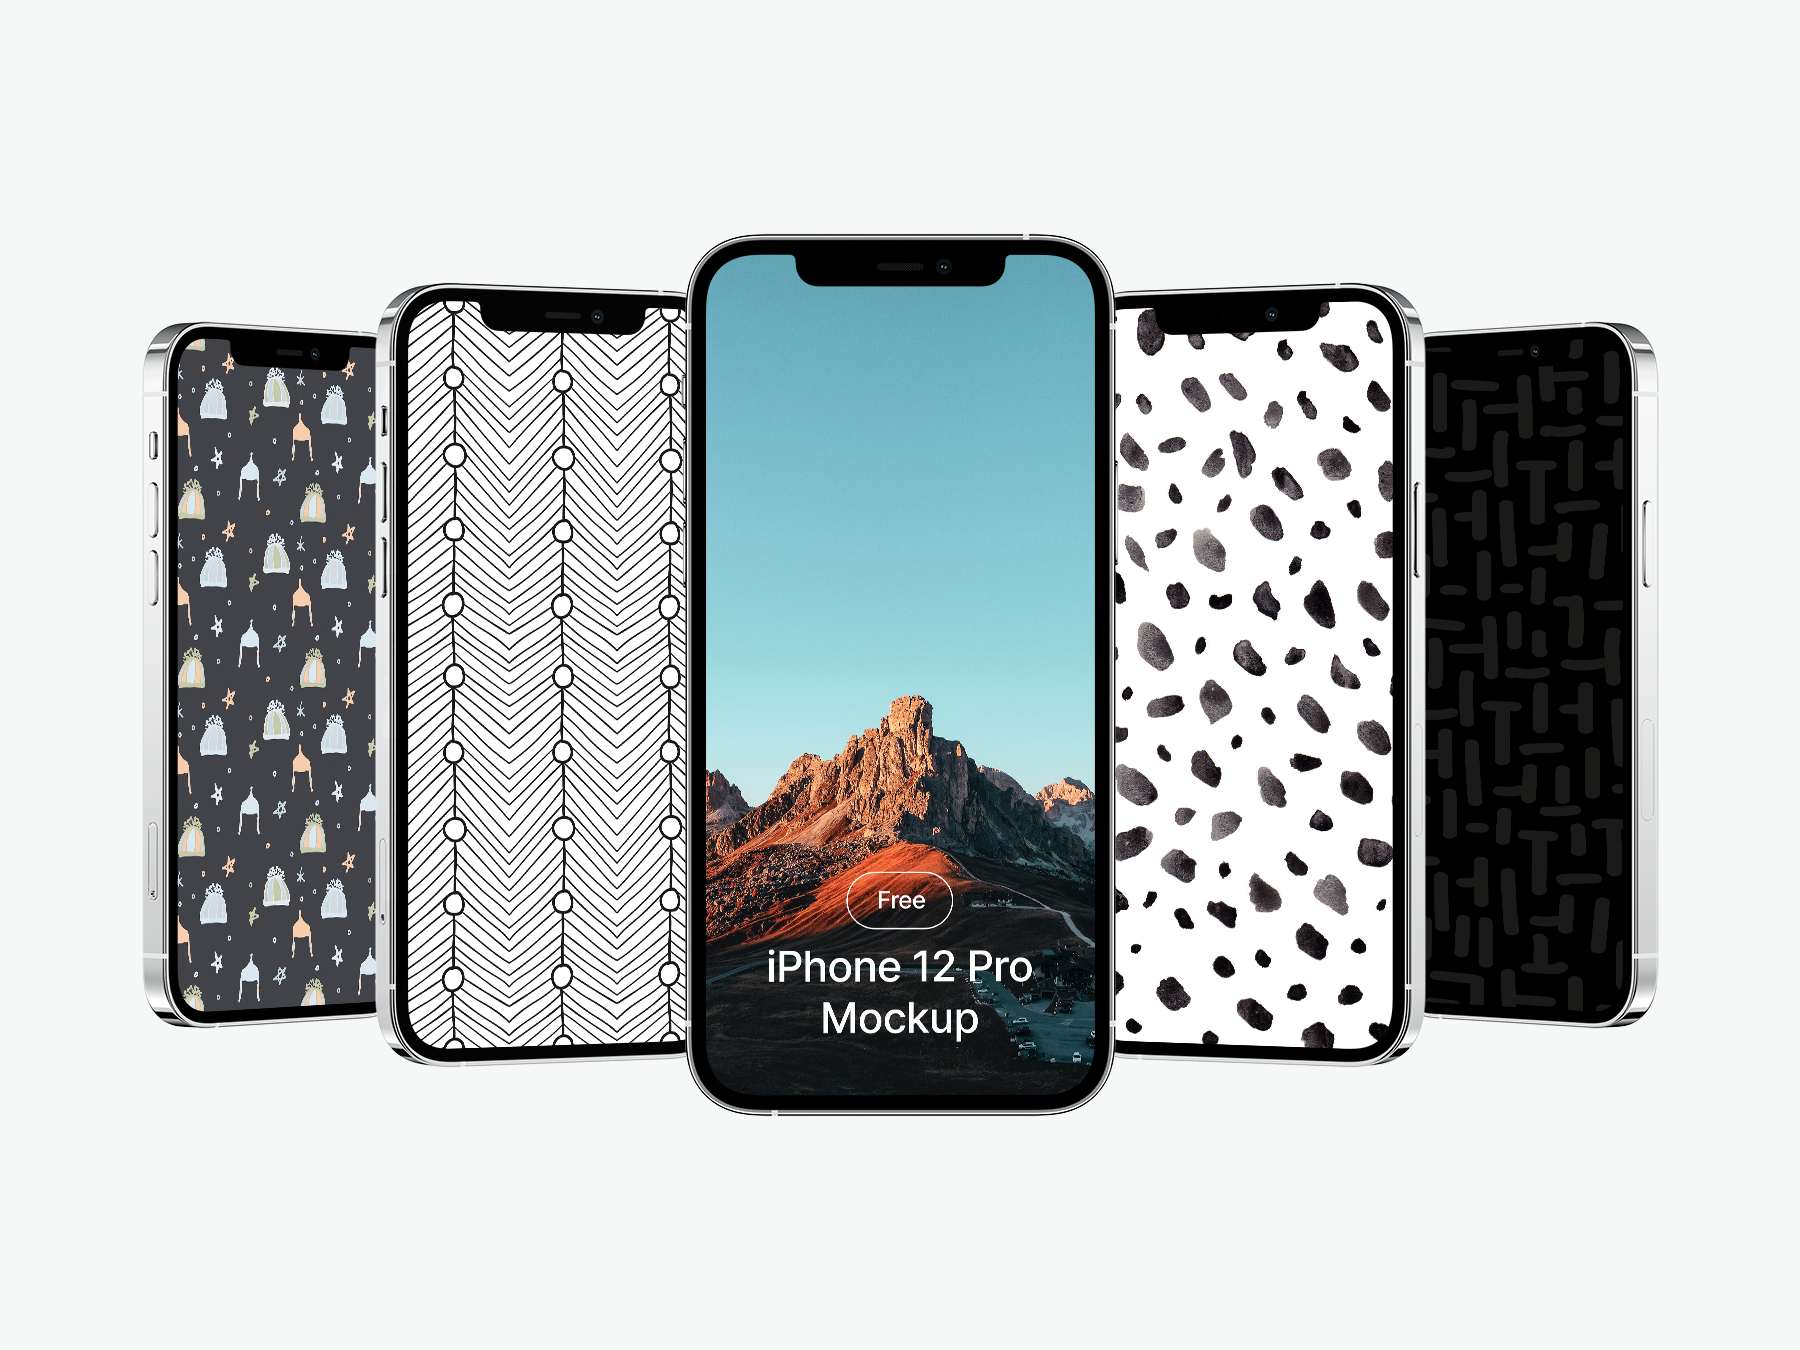 Free iPhone 12 Pro Showcase Mockup